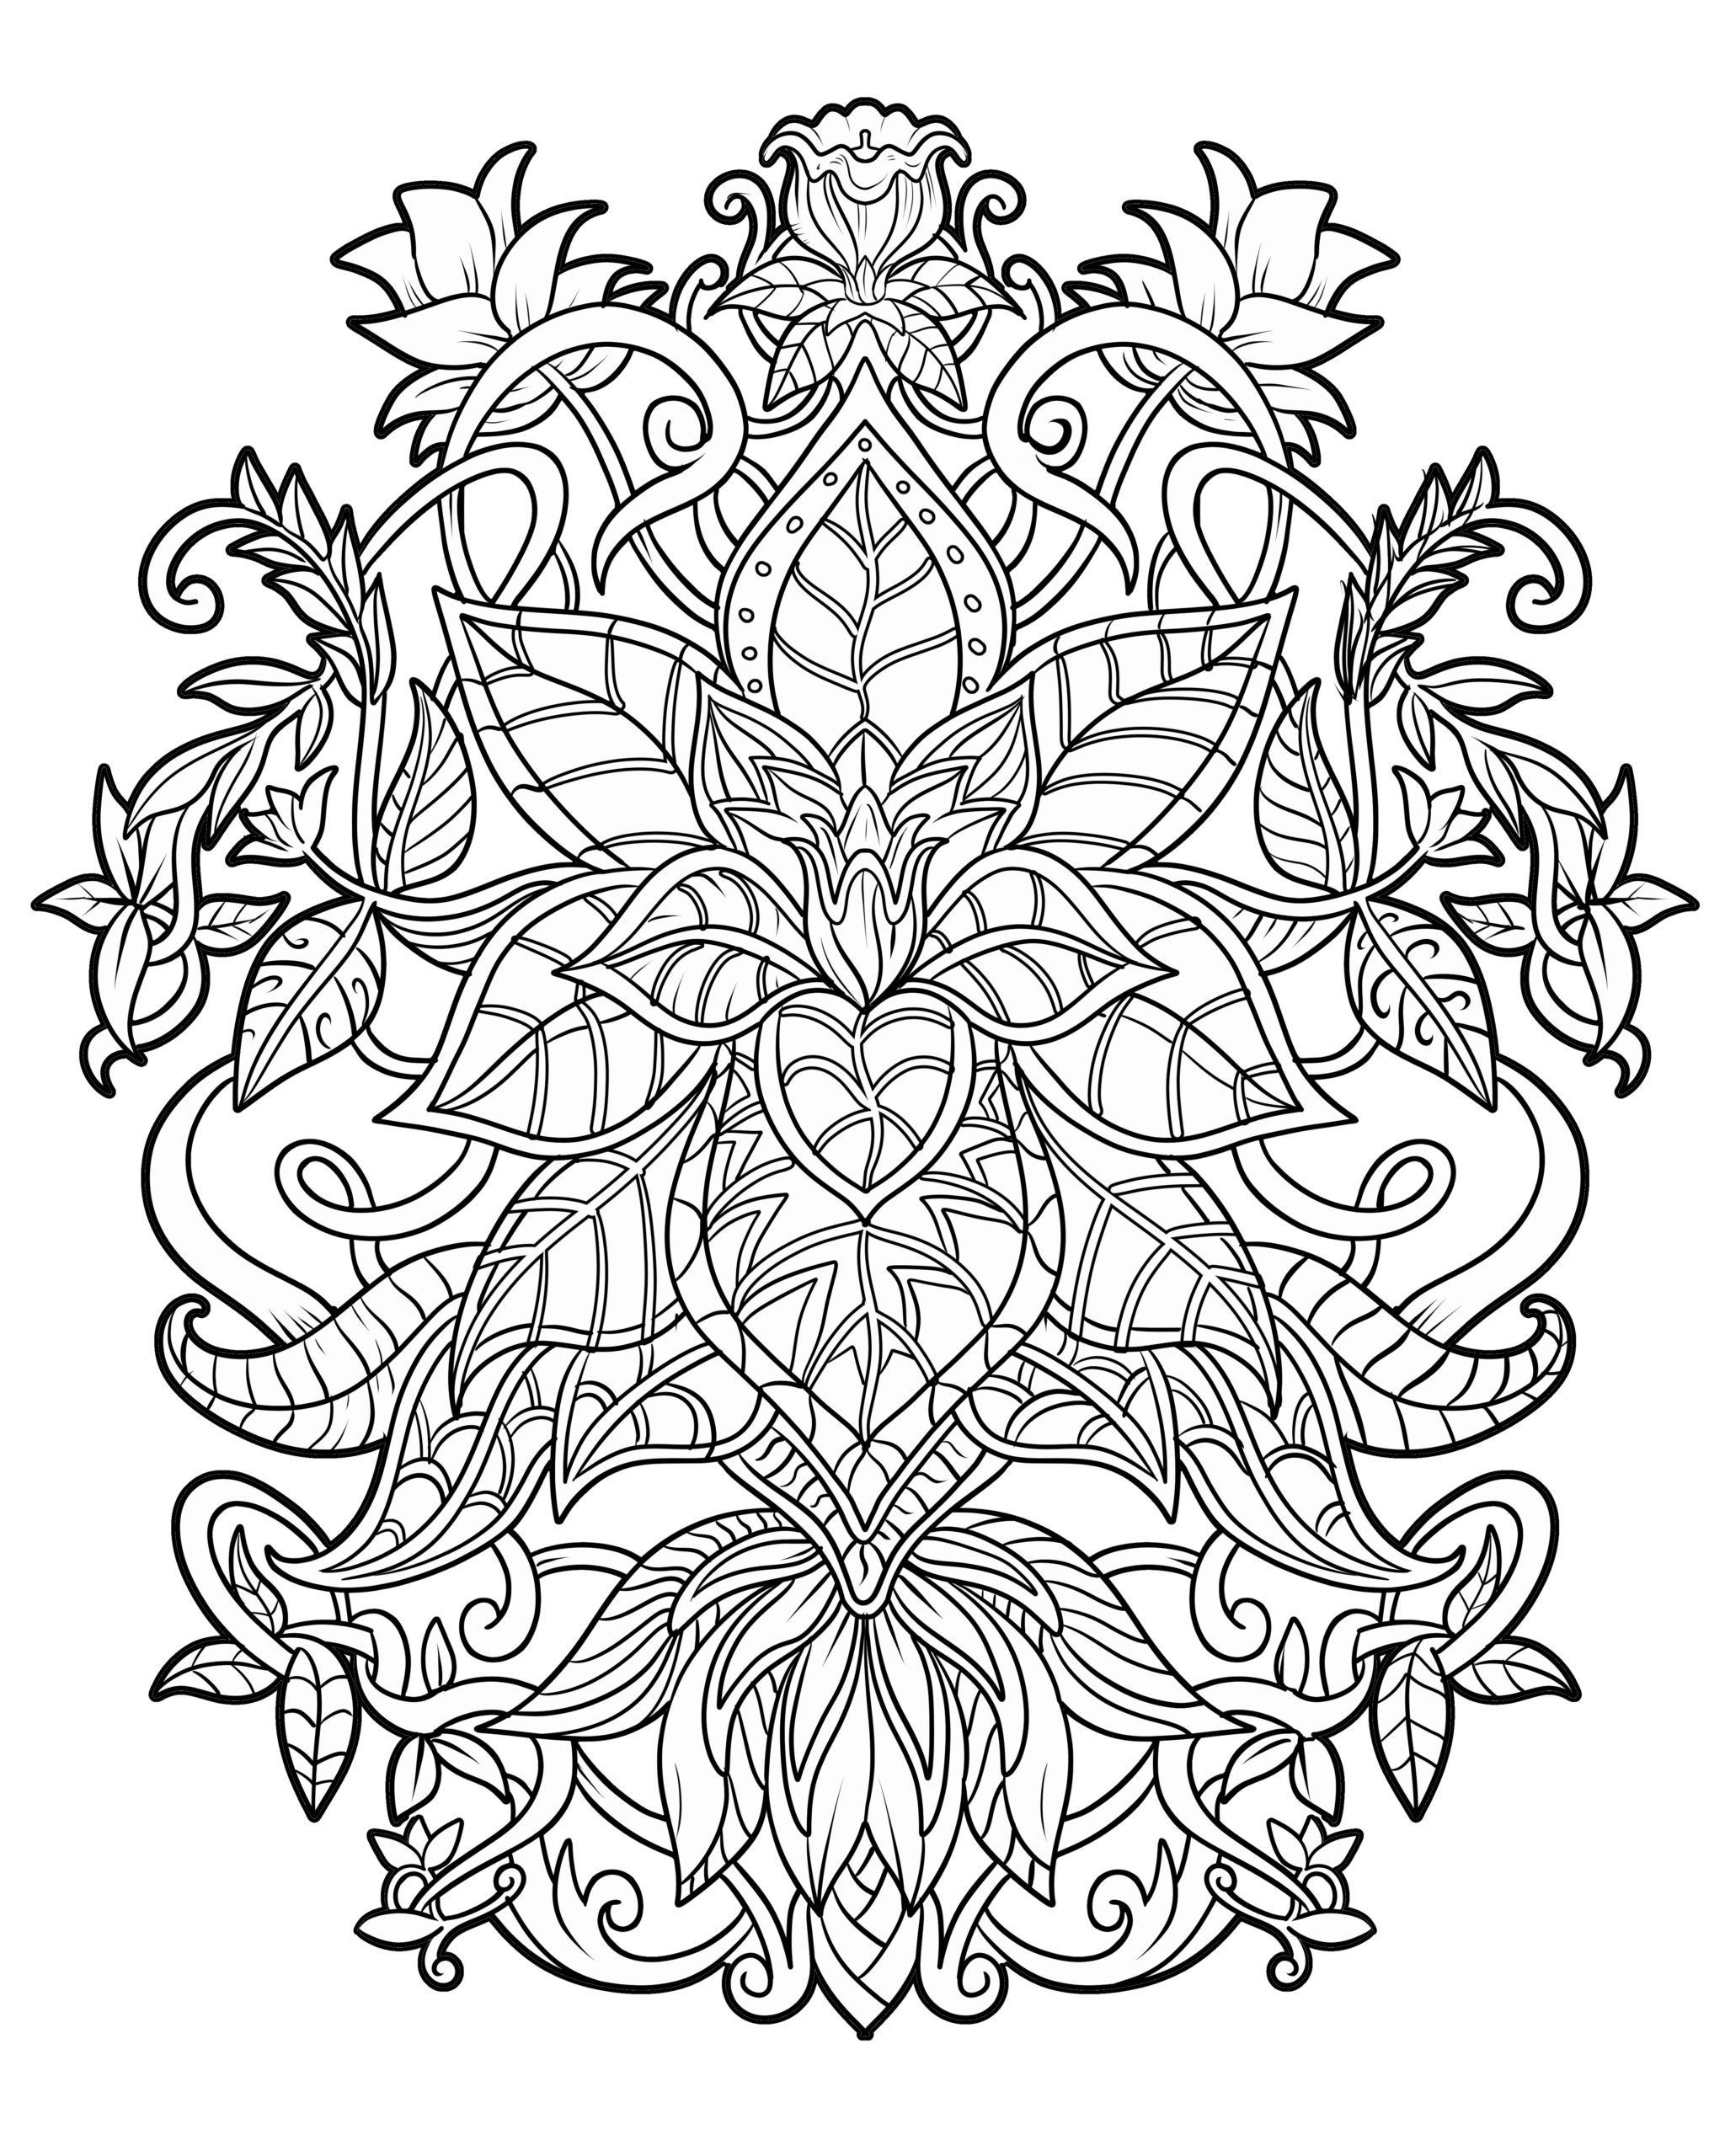 Mandala Online Coloring Pages Coloring Pages Awesome Mandalaoloring Book The Jim Gogarty Mandala Coloring Pages Mandala Coloring Books Mandala Coloring